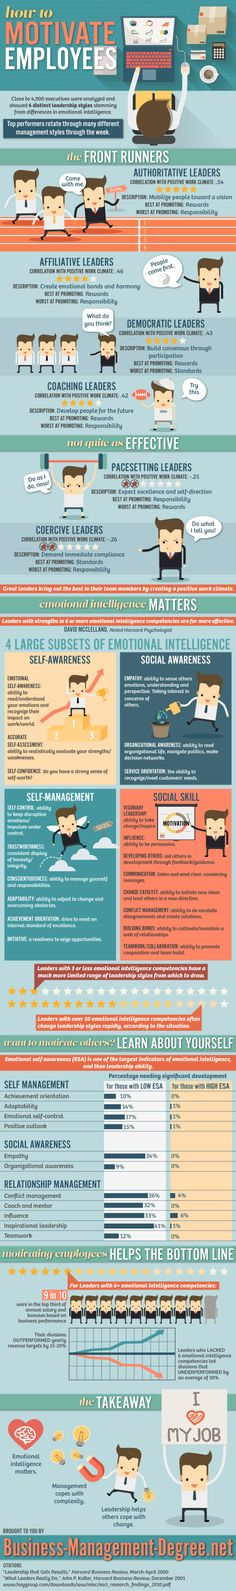 A Very Good Infographic on Inspirational Leaders - NSays.in